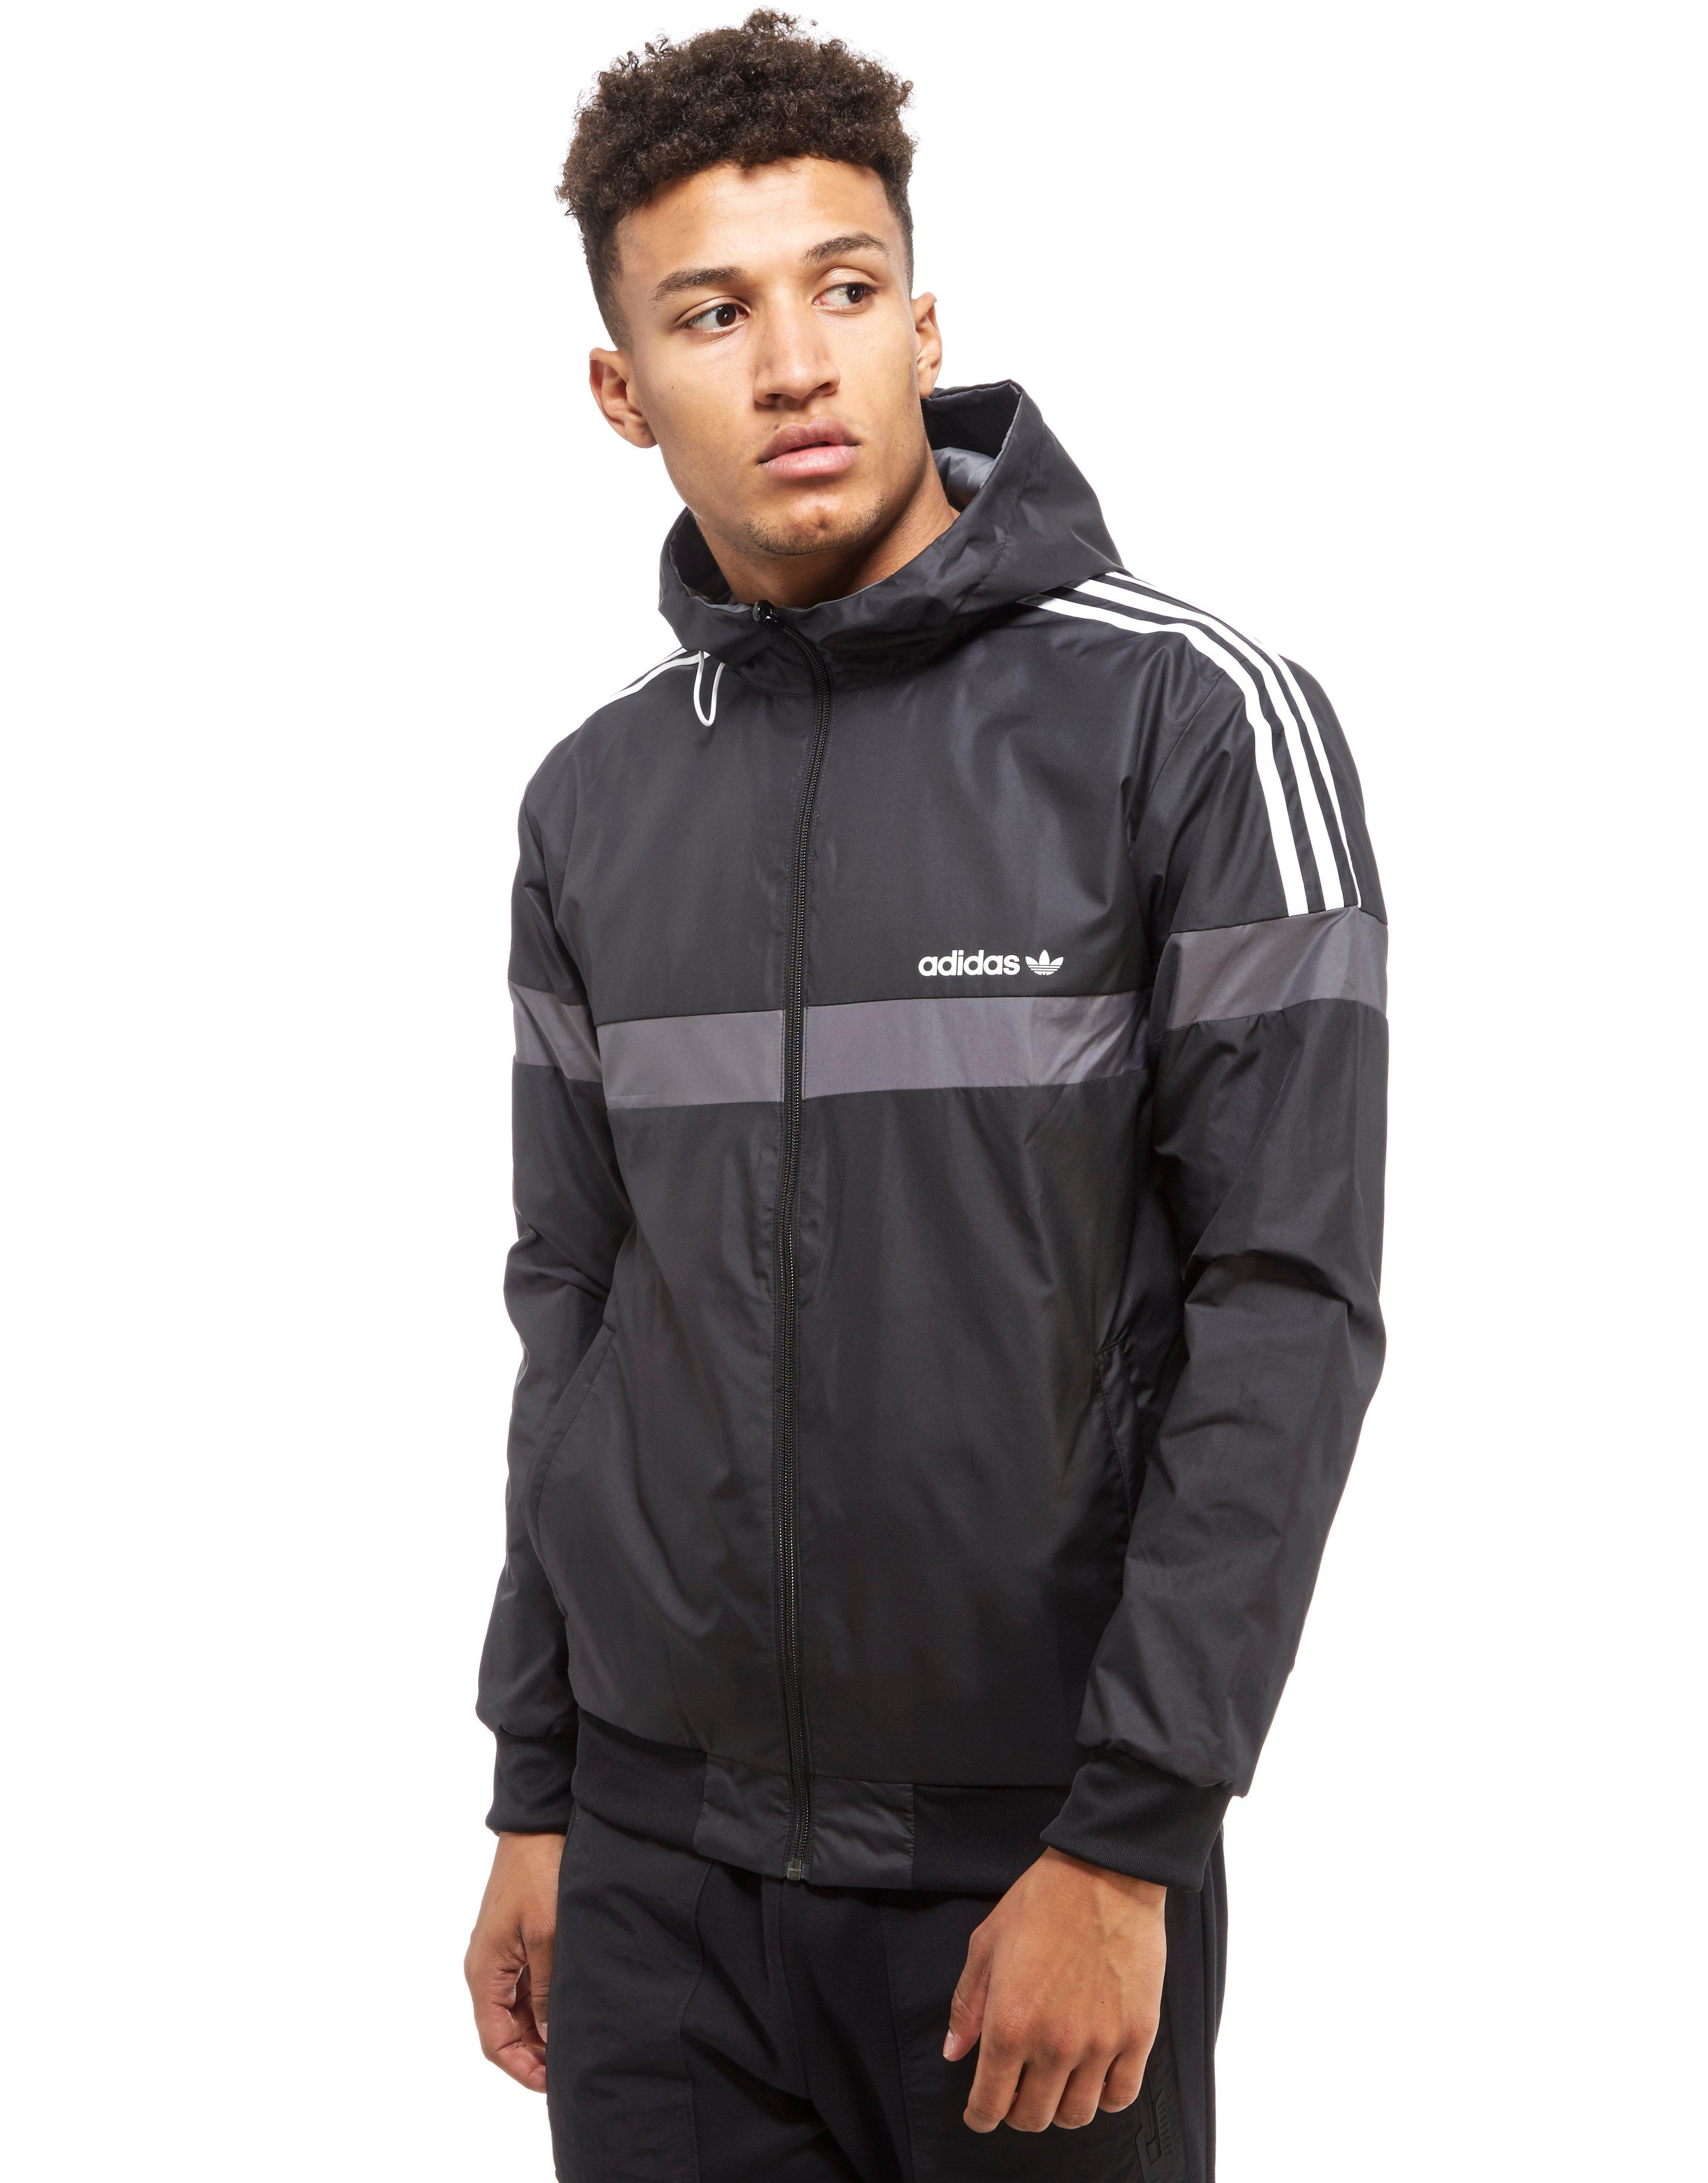 Adidas Originals Itasca Reversible Jacket In Gray For Men Lyst